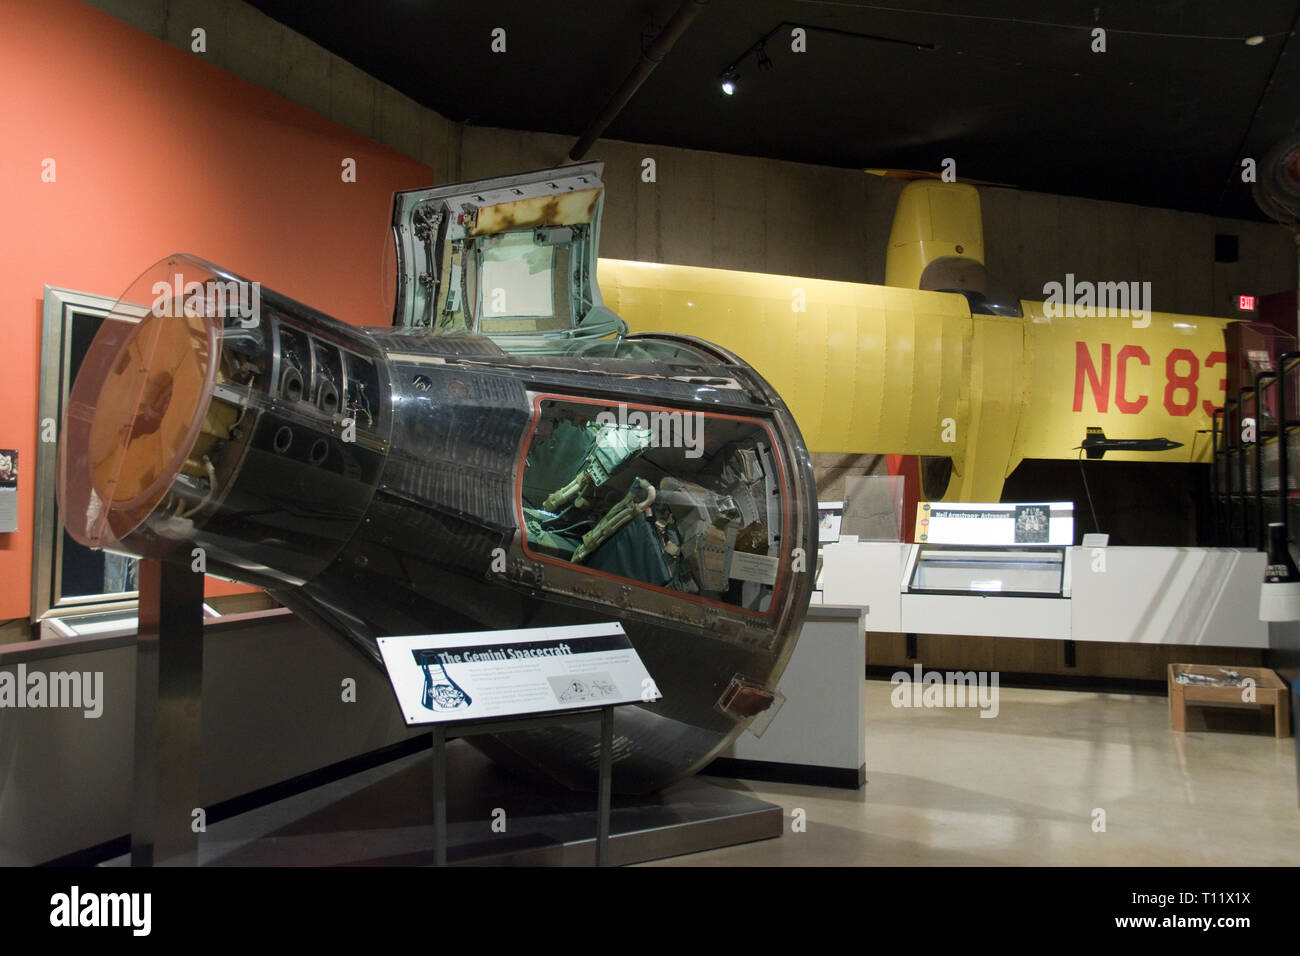 The Gemini 8 spacecraft flown by Apollo astronaut Neil Armstrong, and the Aeronca Champion airplane in which he learned to fly, in the Armstrong Air a - Stock Image